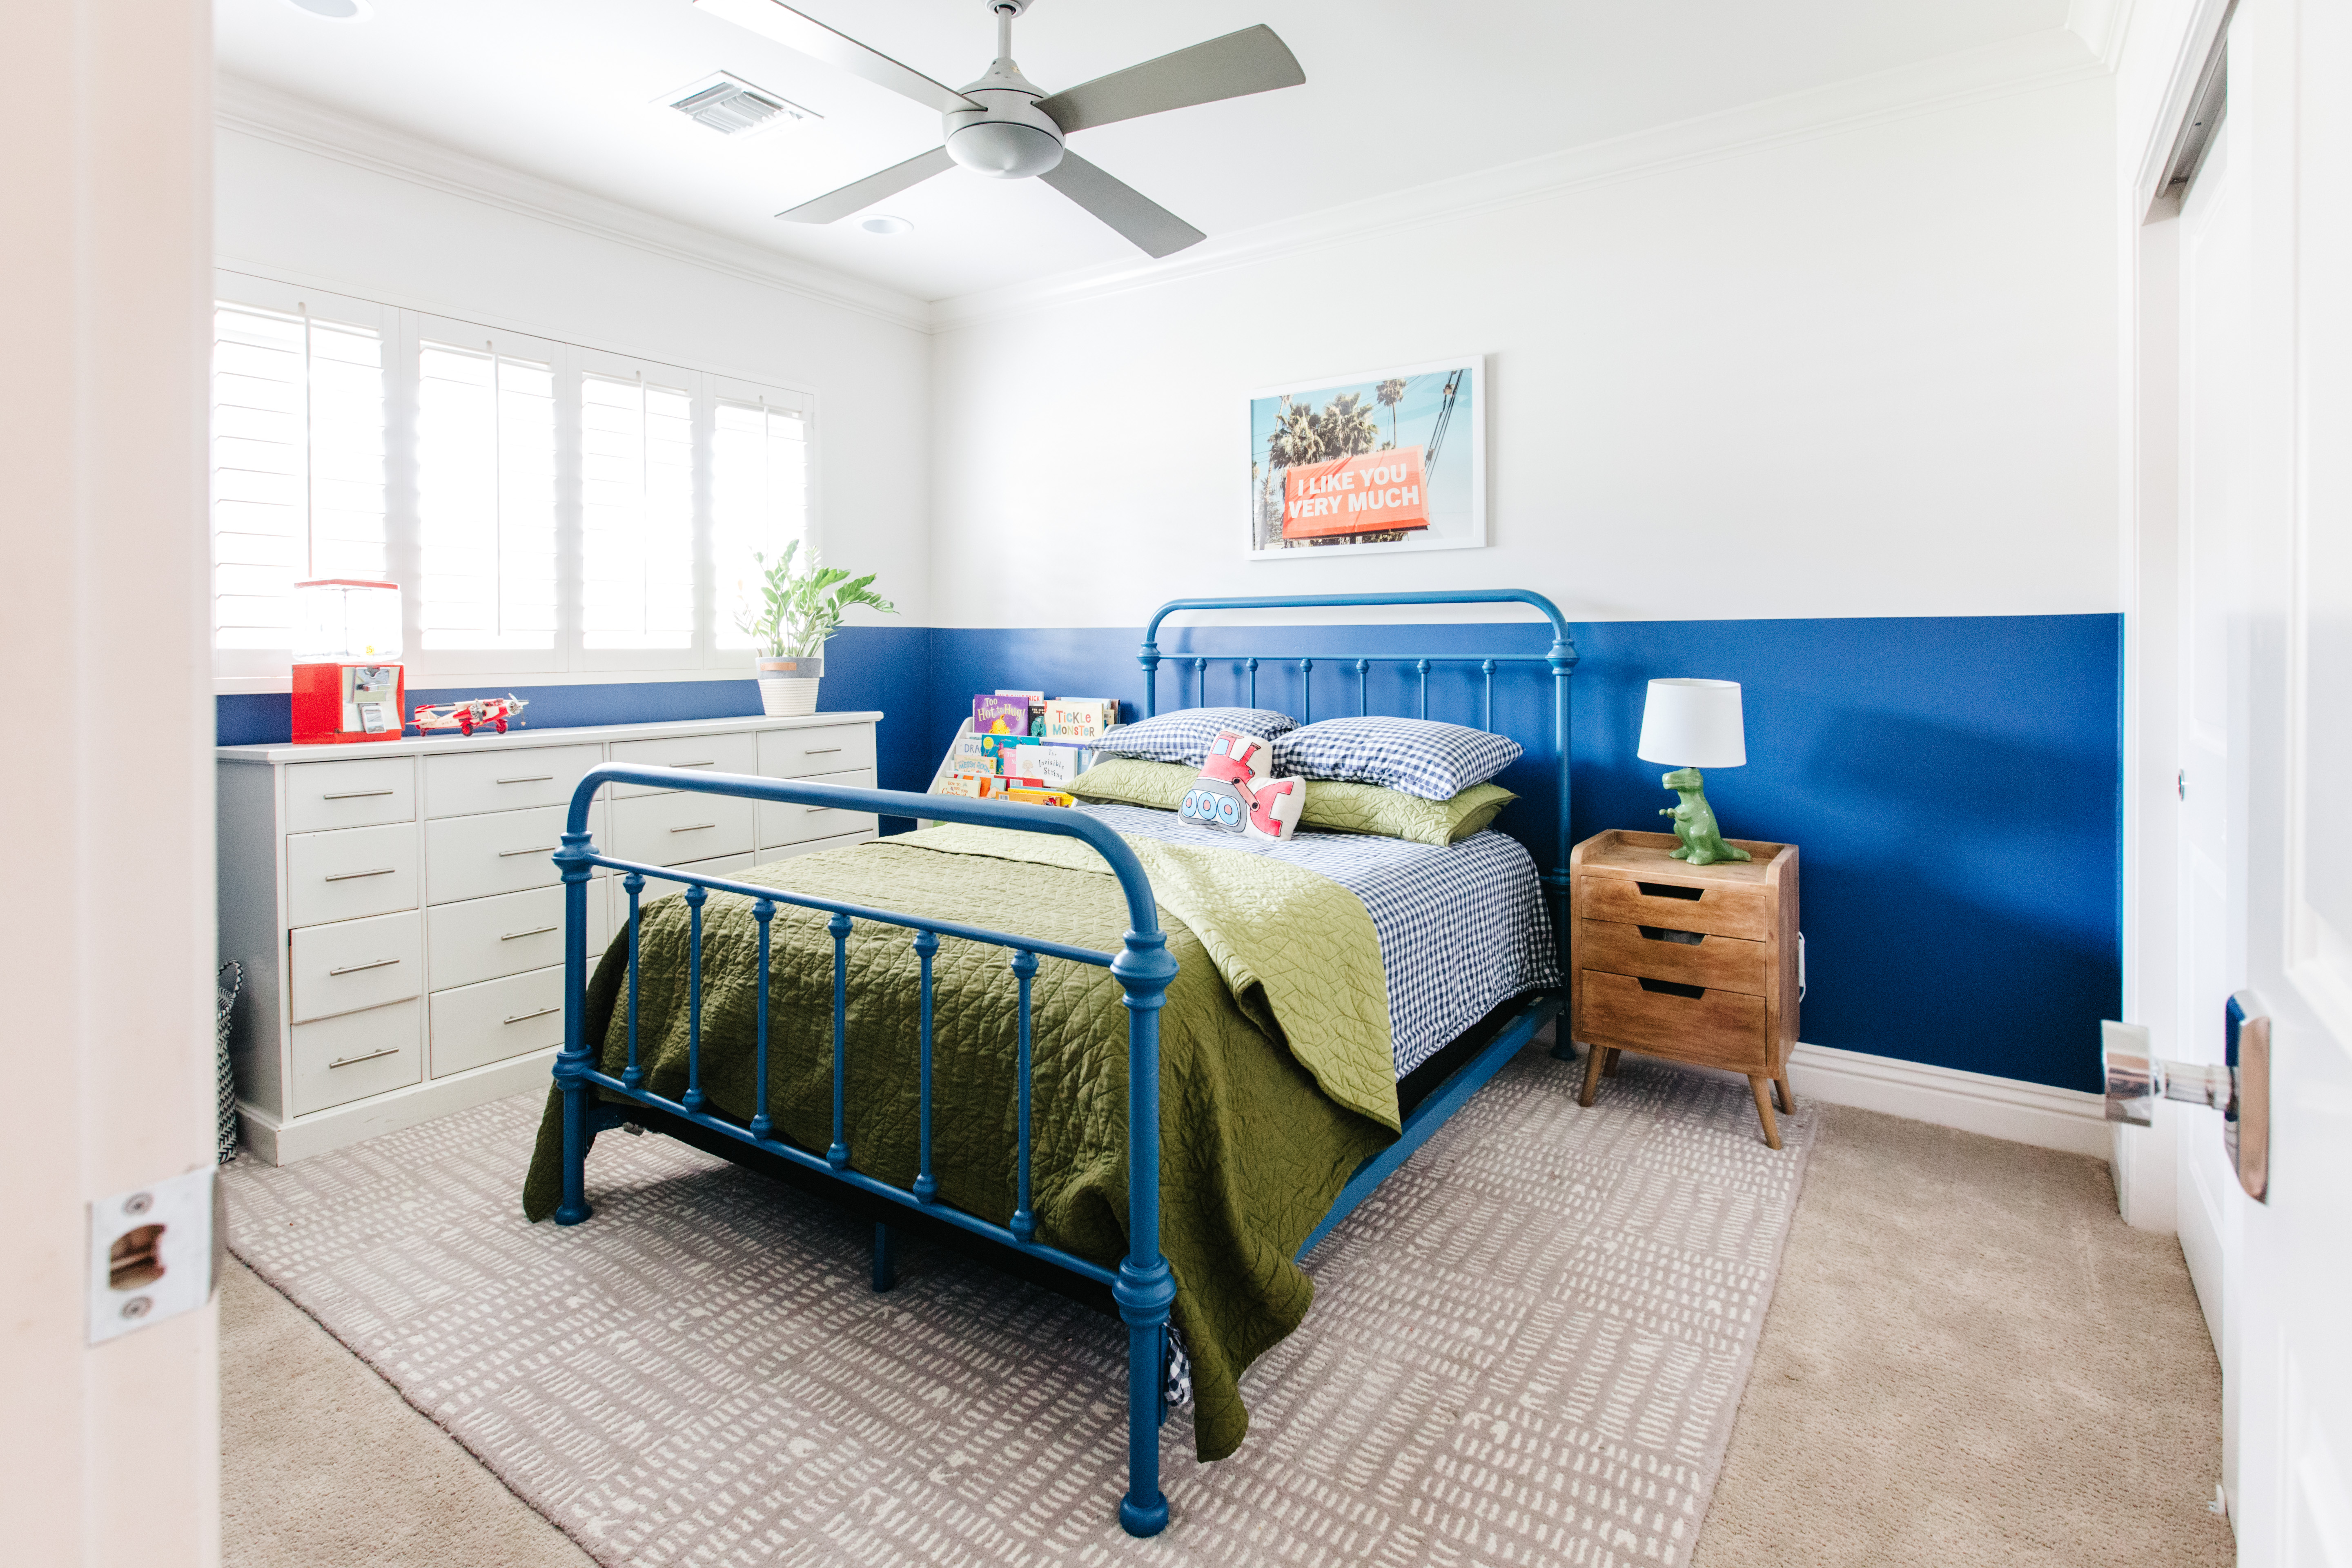 little boys bedroom navy blue wainscoting blue iron bed lime green bedding